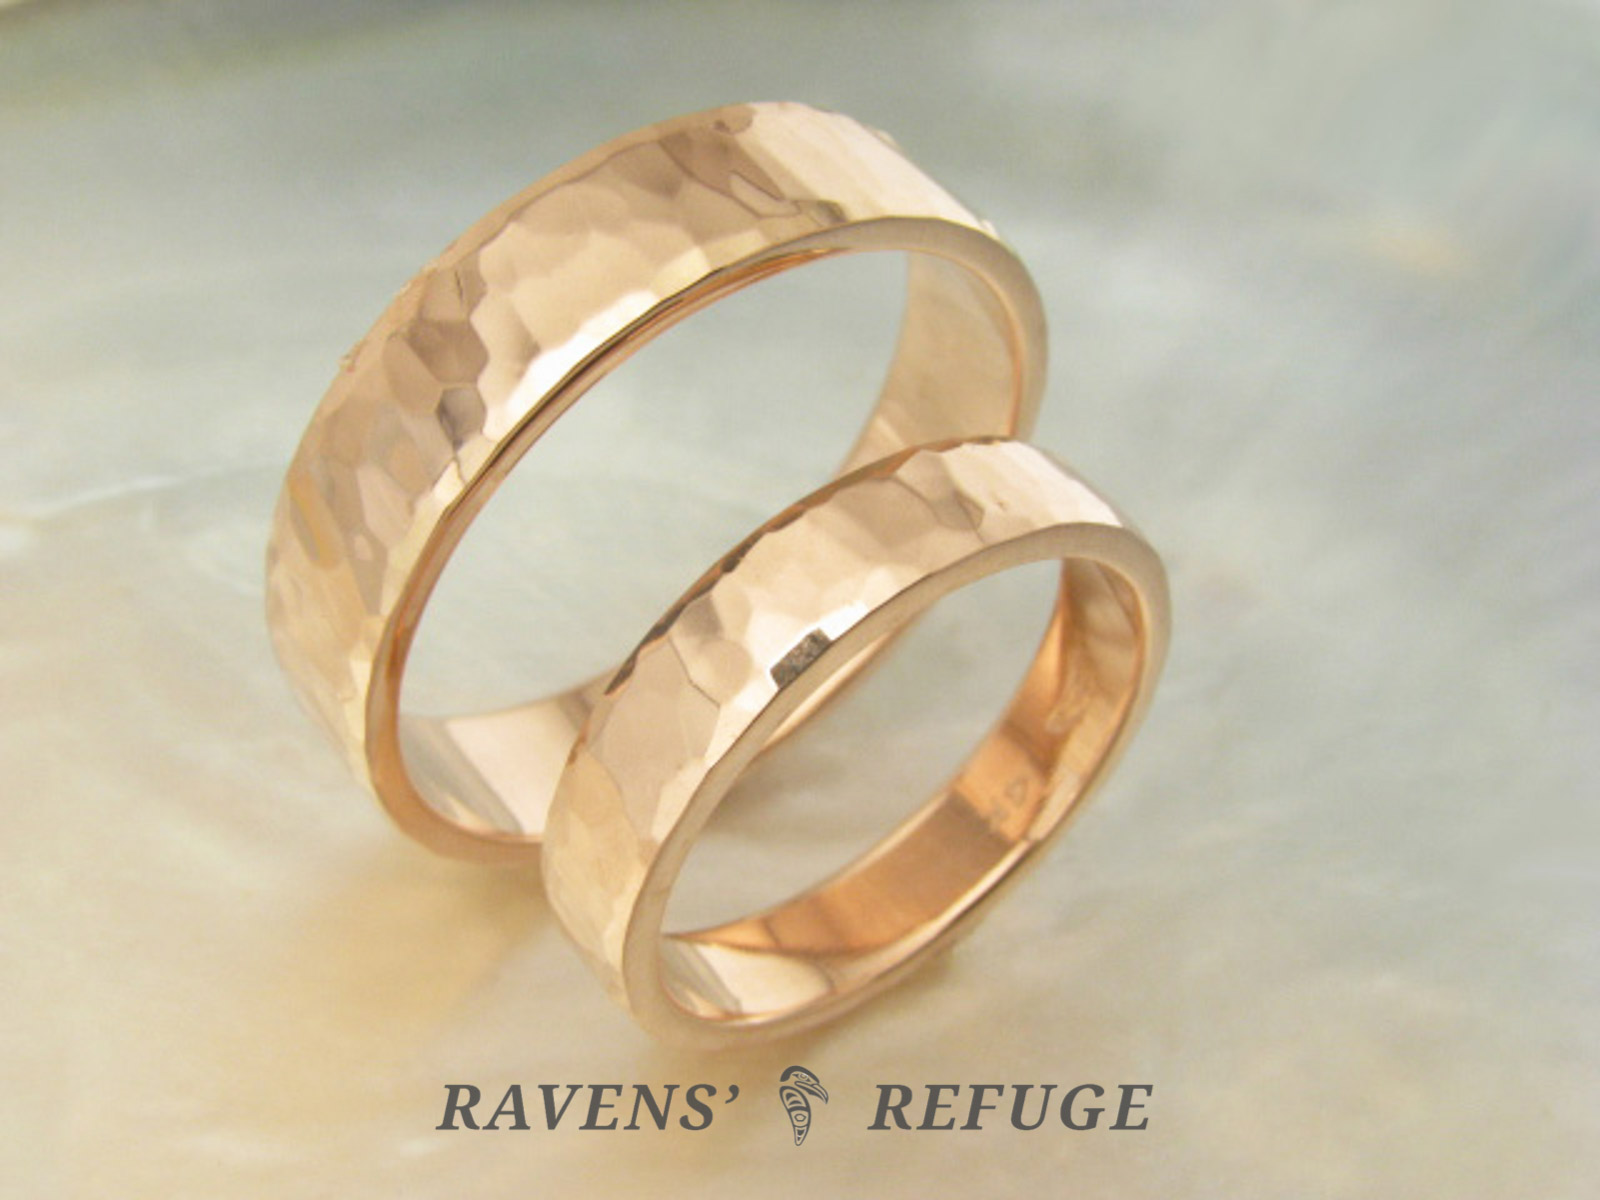 Hammered Rose Gold Rings Matching Wedding Bands Ravens